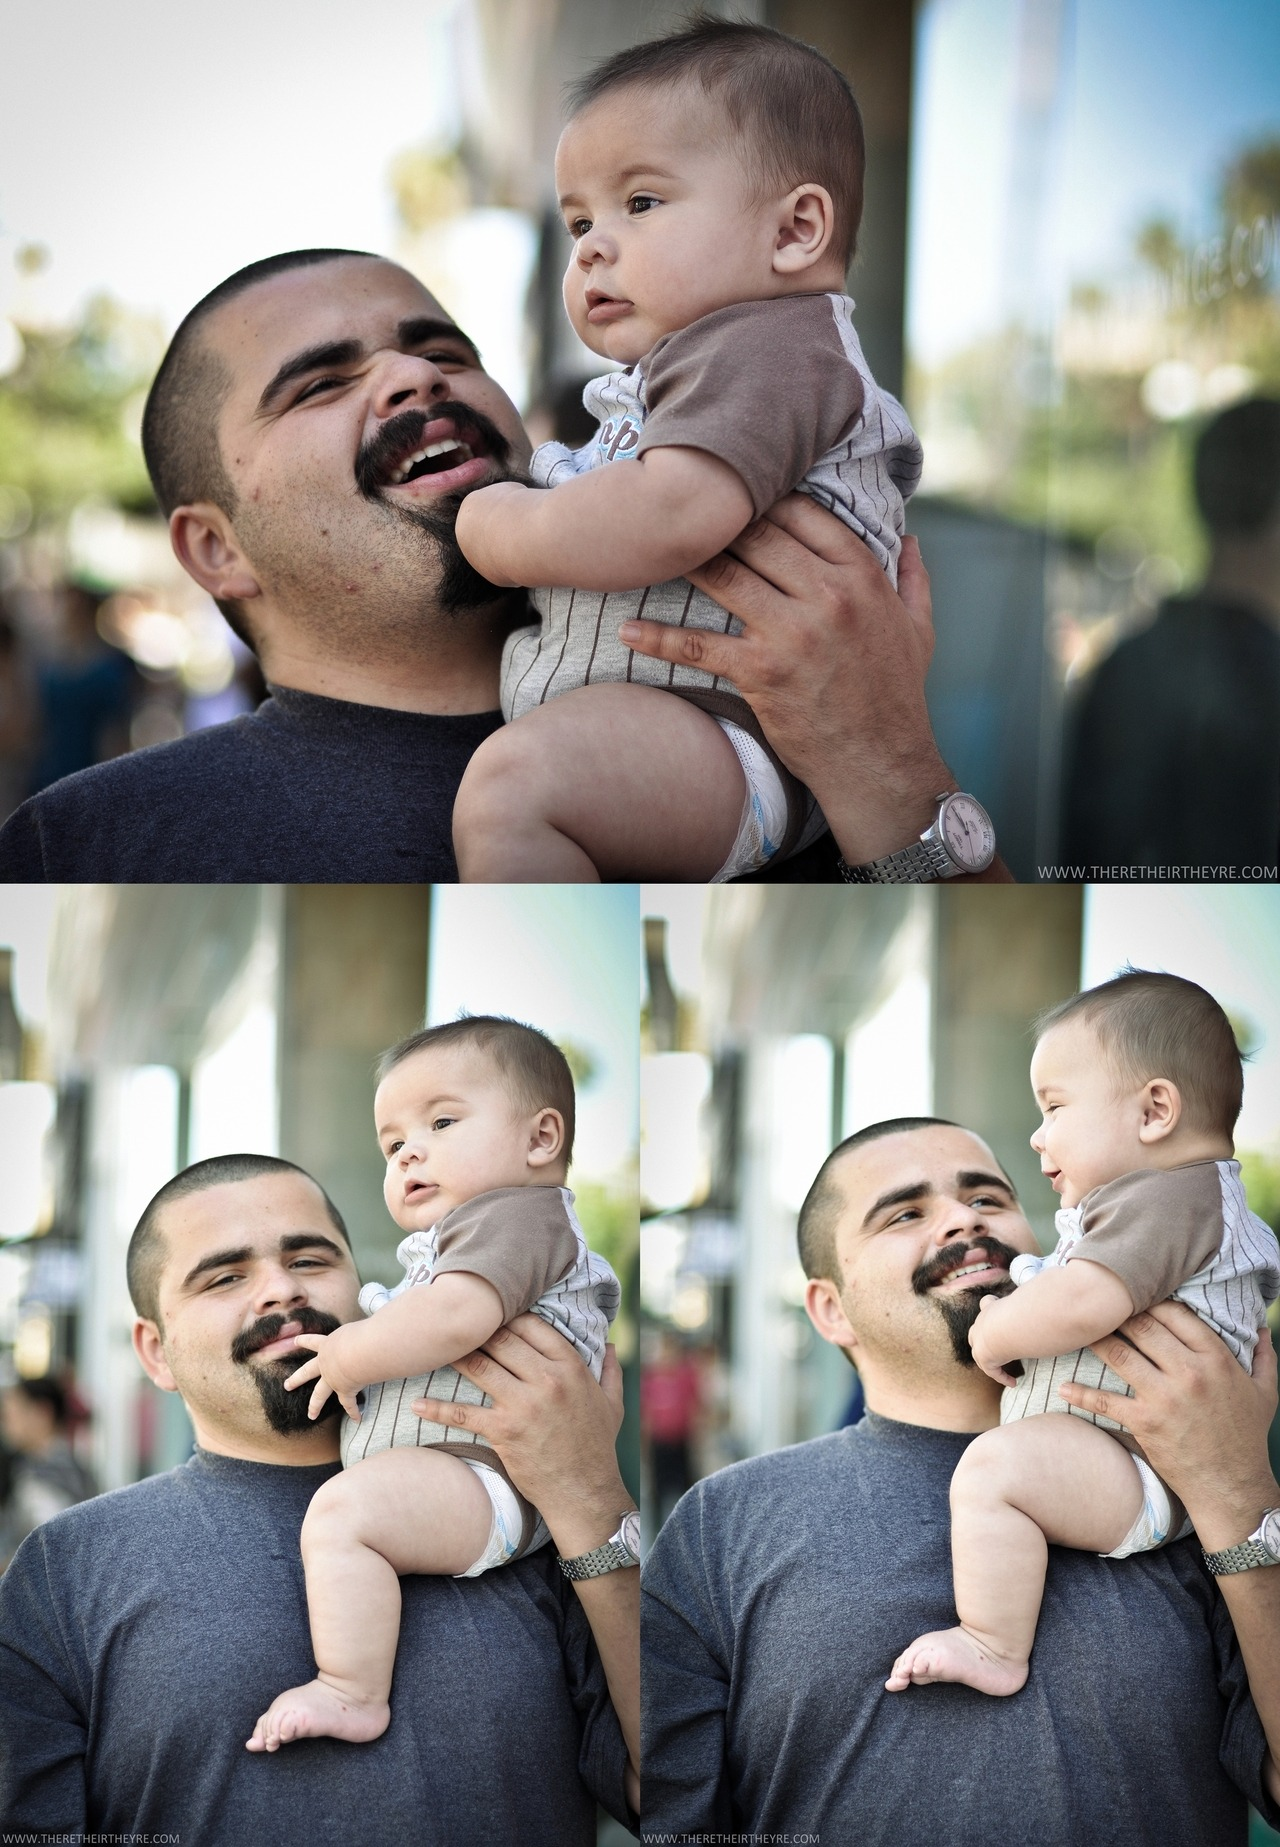 Trying the 100 strangers thing. here's #1, baby Nathan and proud dad. photographed at the 3rd St. Promenade in Santa Monica. 07/15/2012.